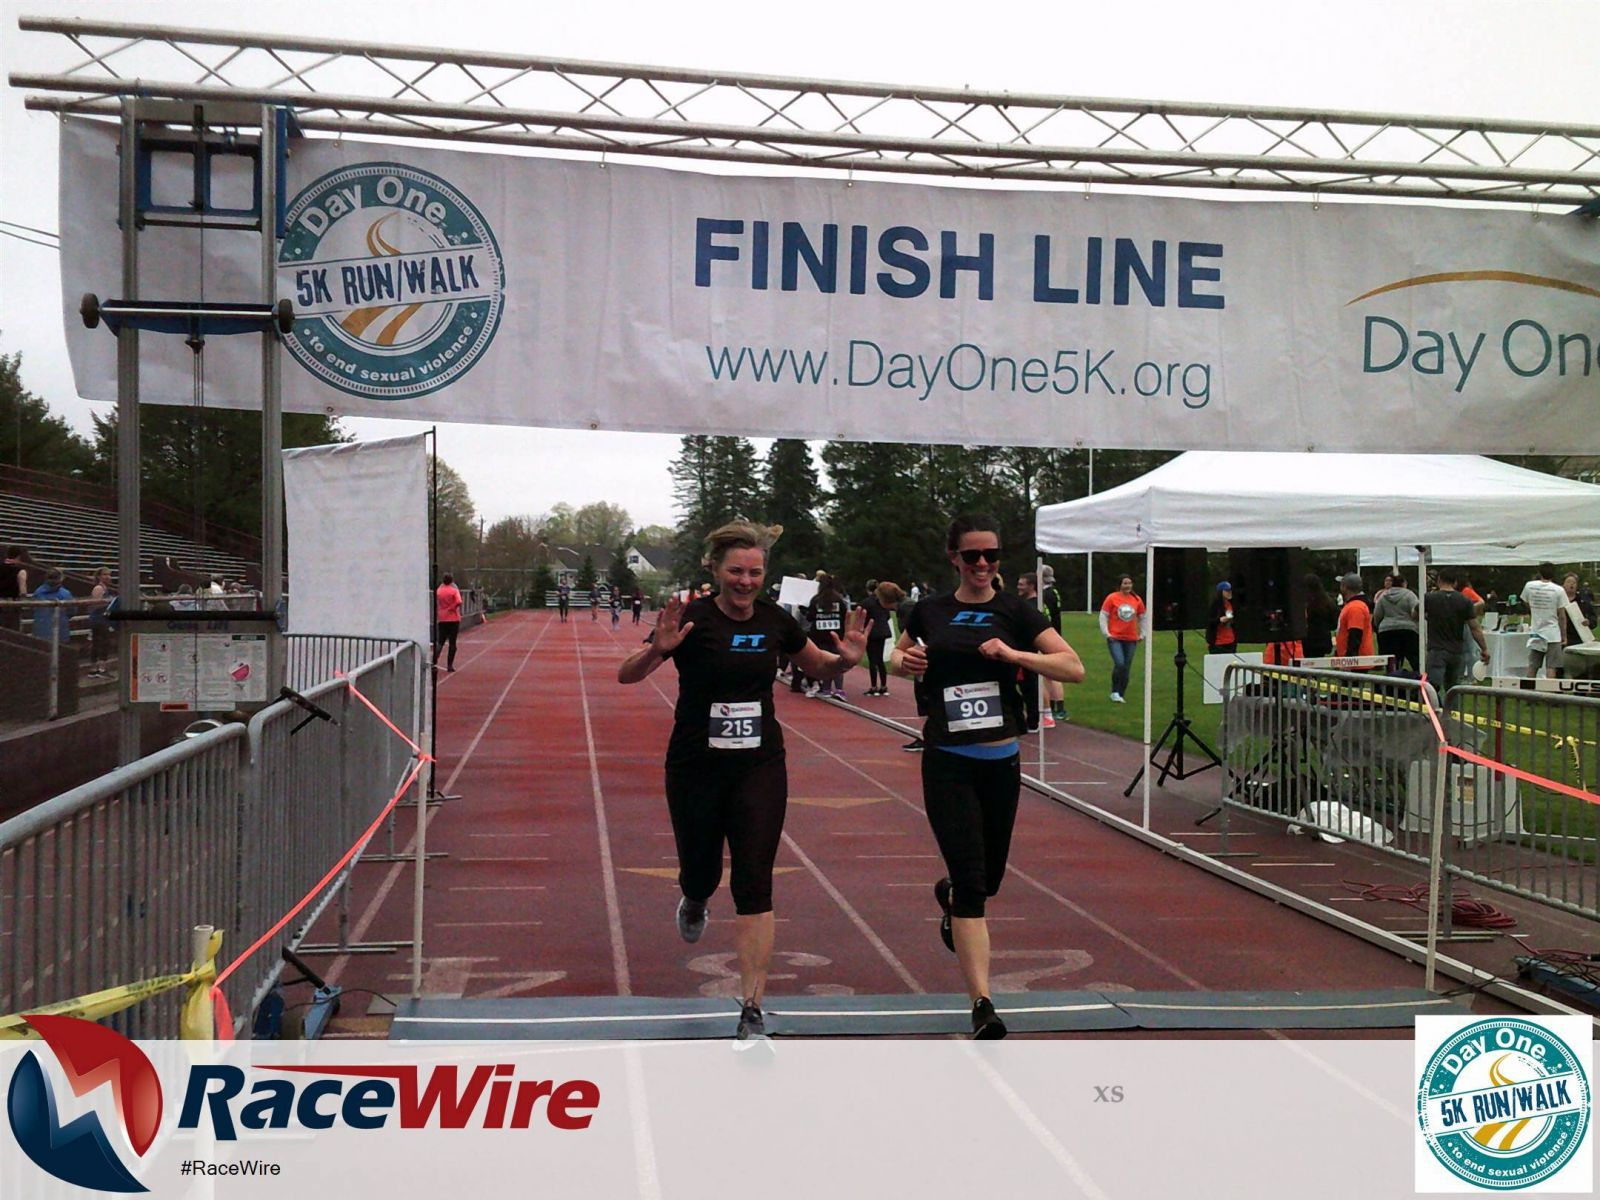 Two women excited and happy to cross 5K finish line